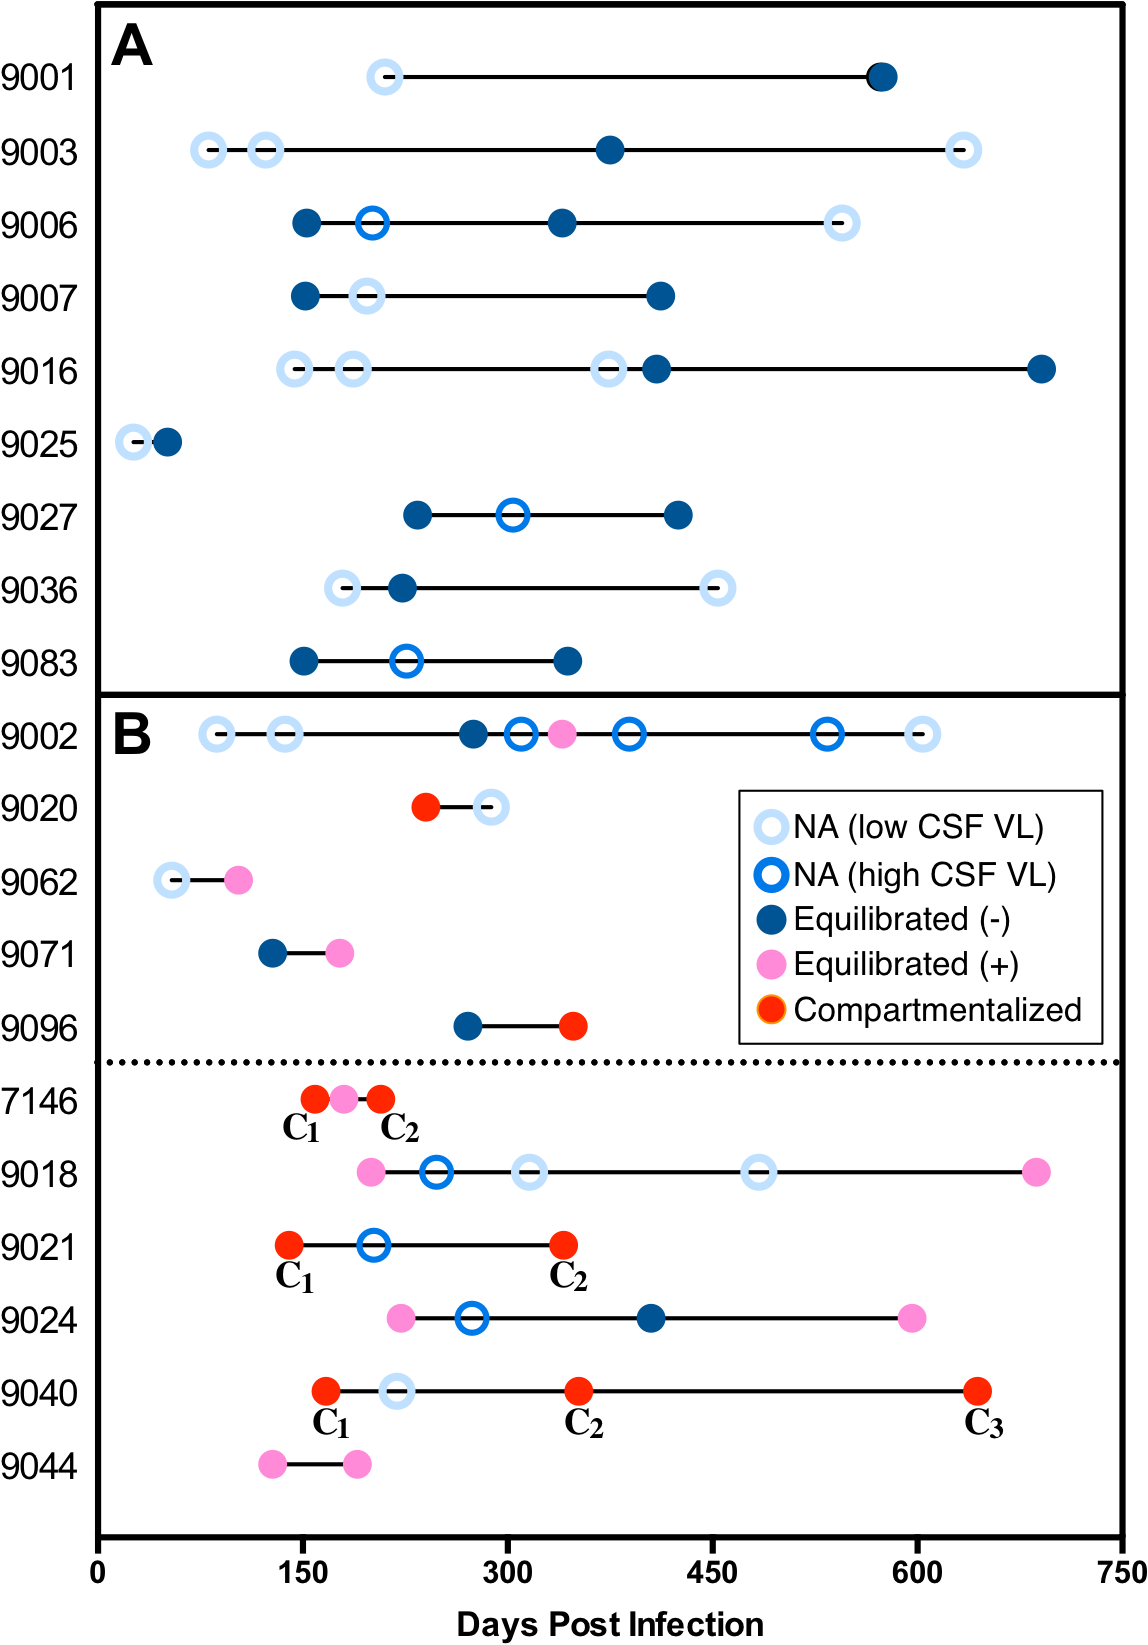 An assessment of the viral populations in the two compartments longitudinally.